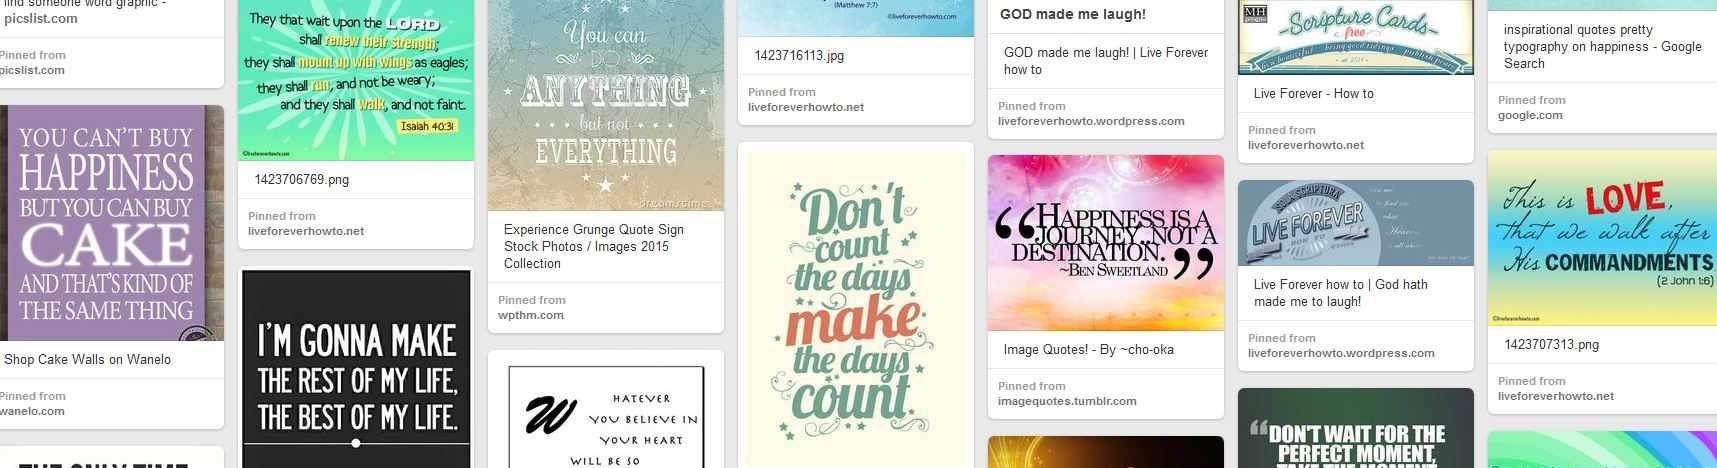 Live for ever how to at Pinterest